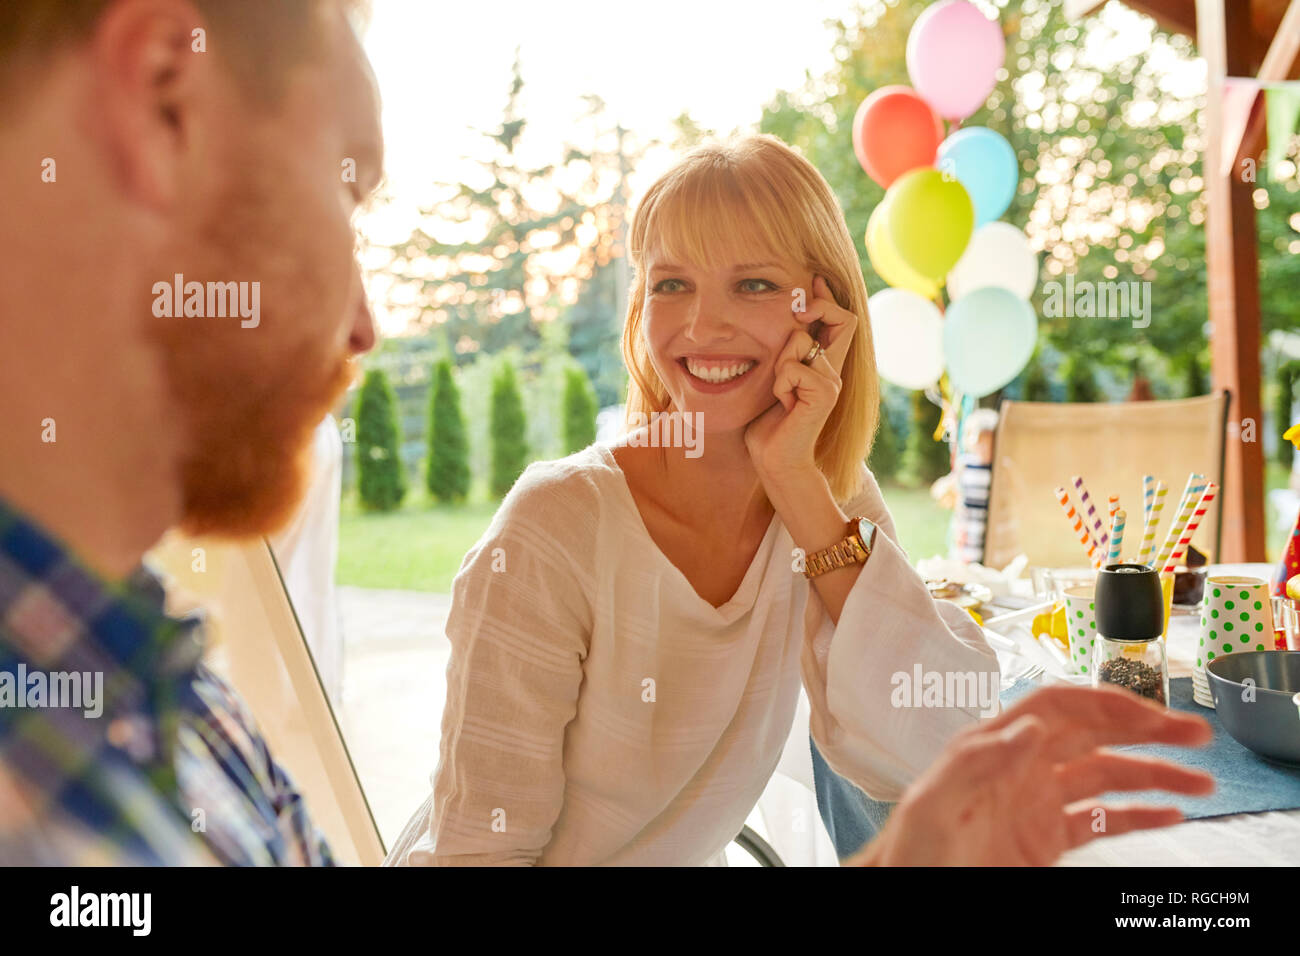 Smiling woman looking at man on a garden party - Stock Image